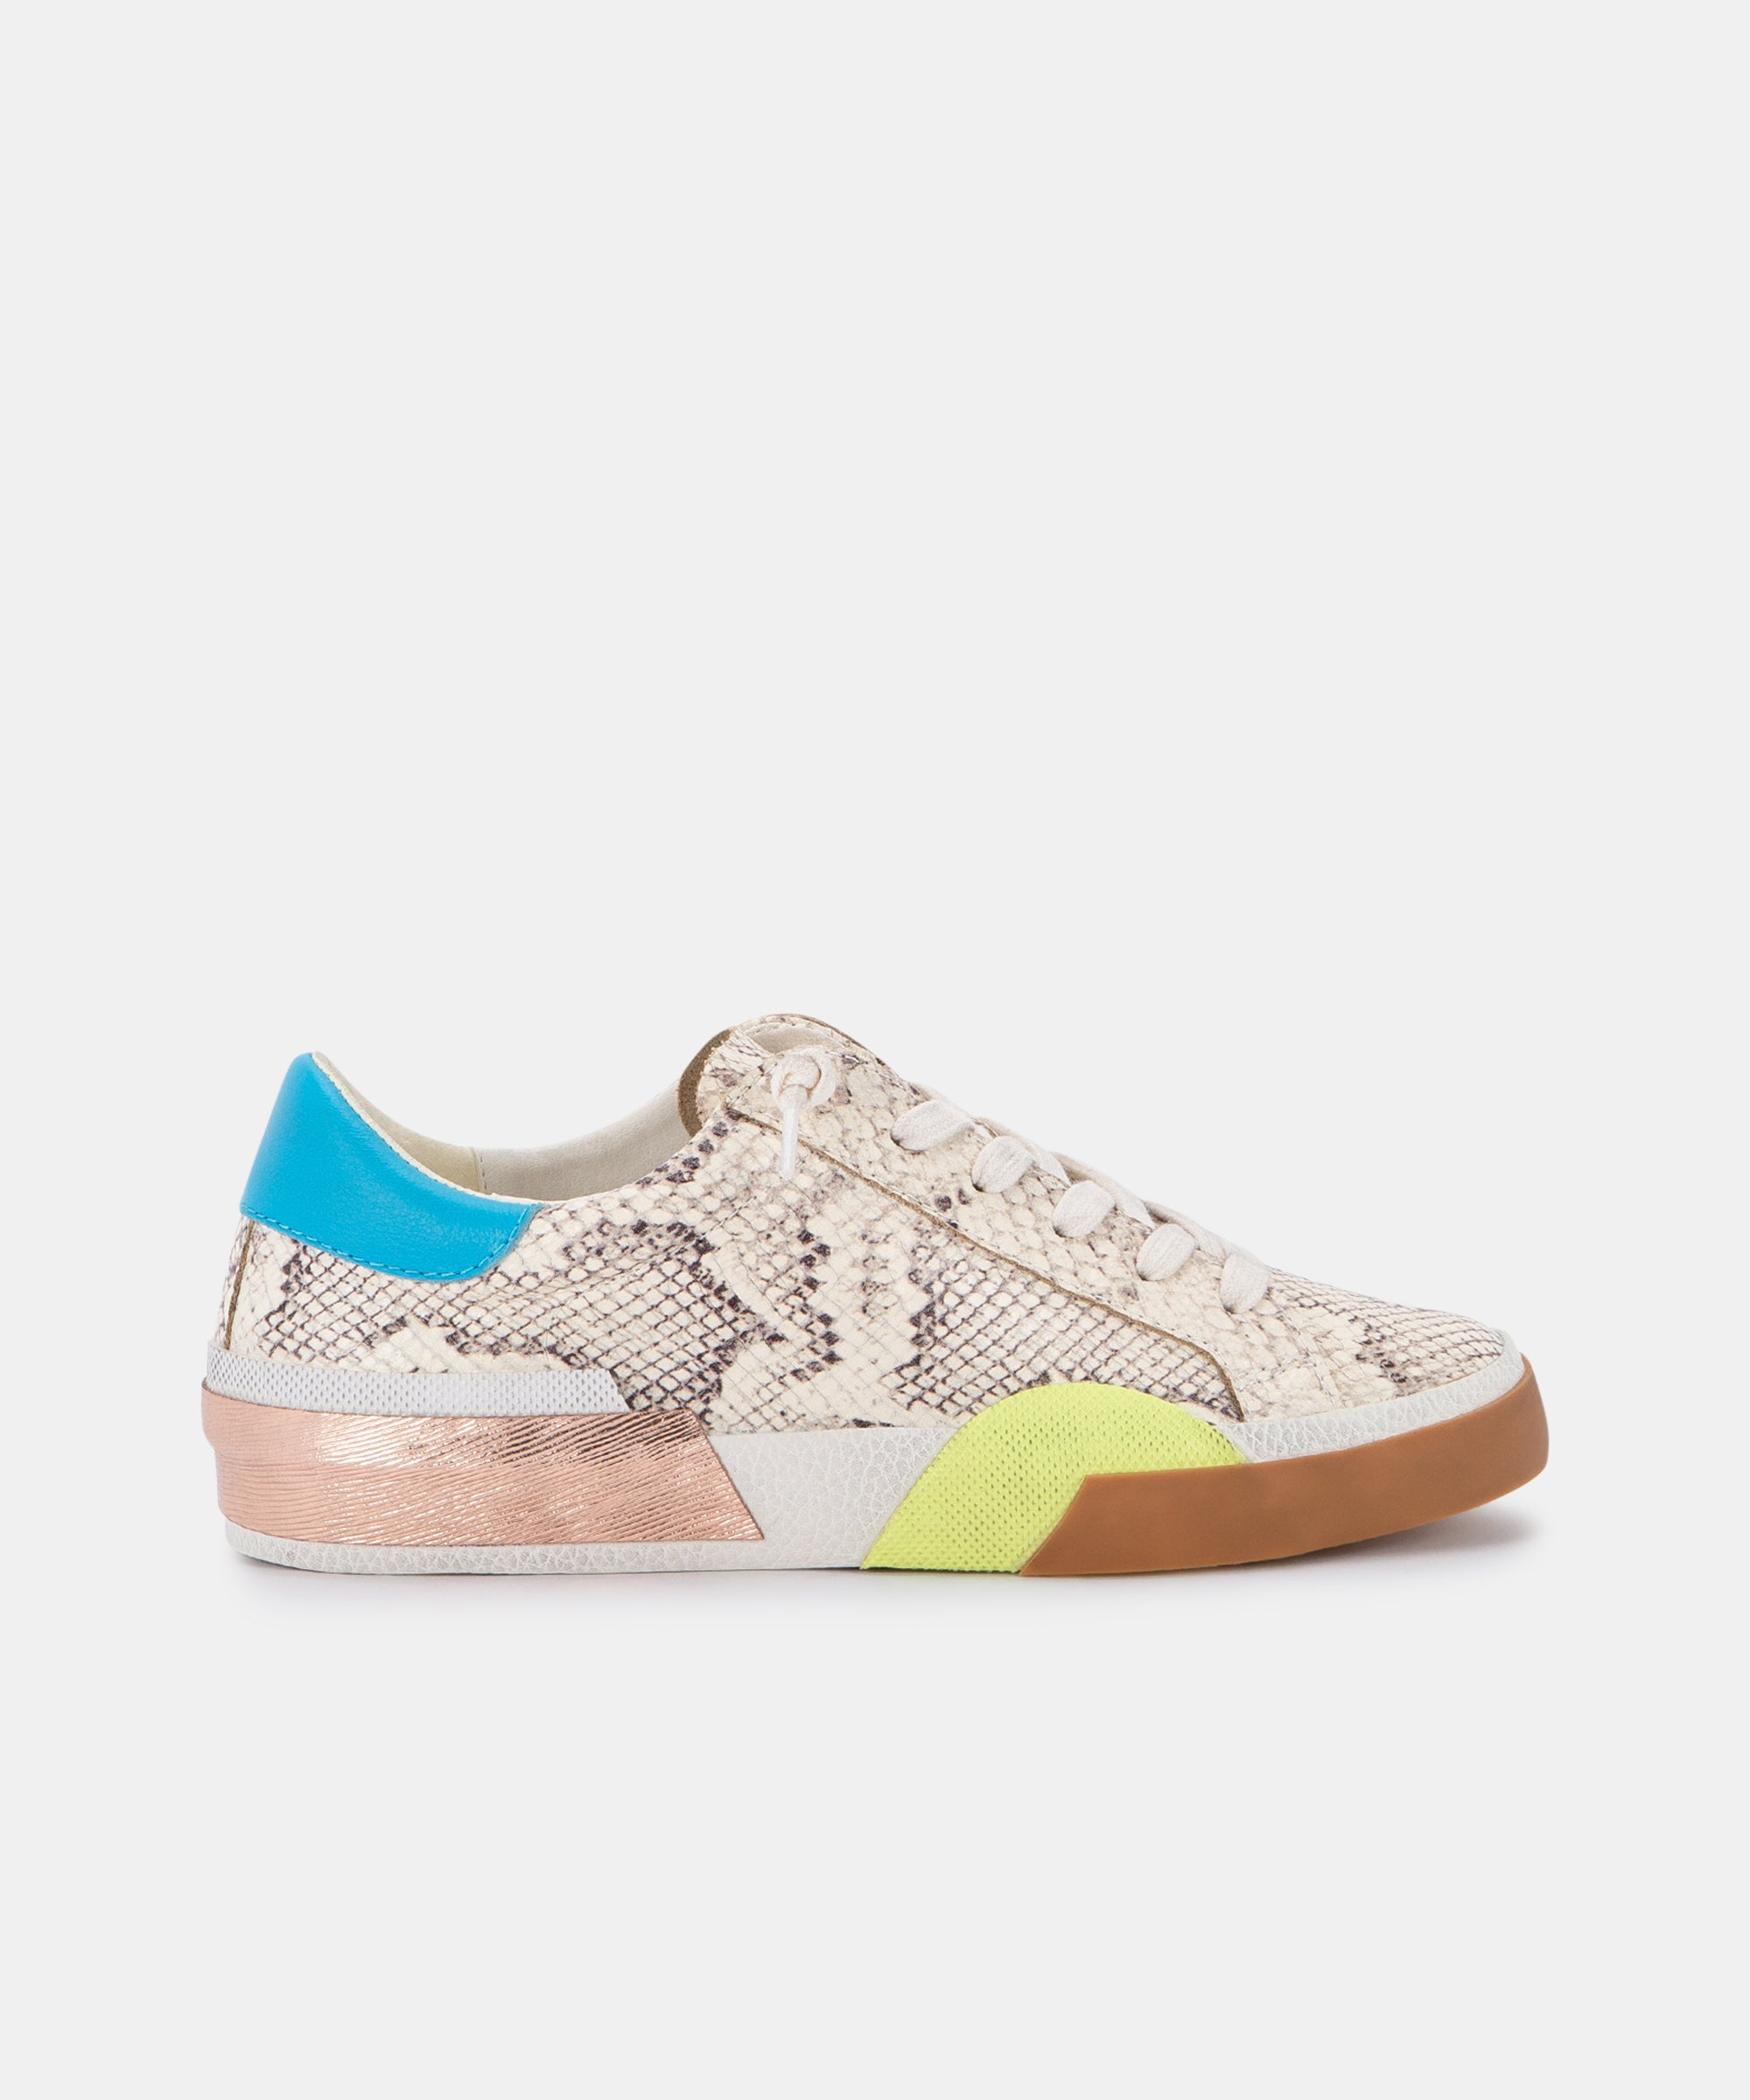 ZINA SNEAKERS IN BONE MULTI SNAKE PRINT LEATHER